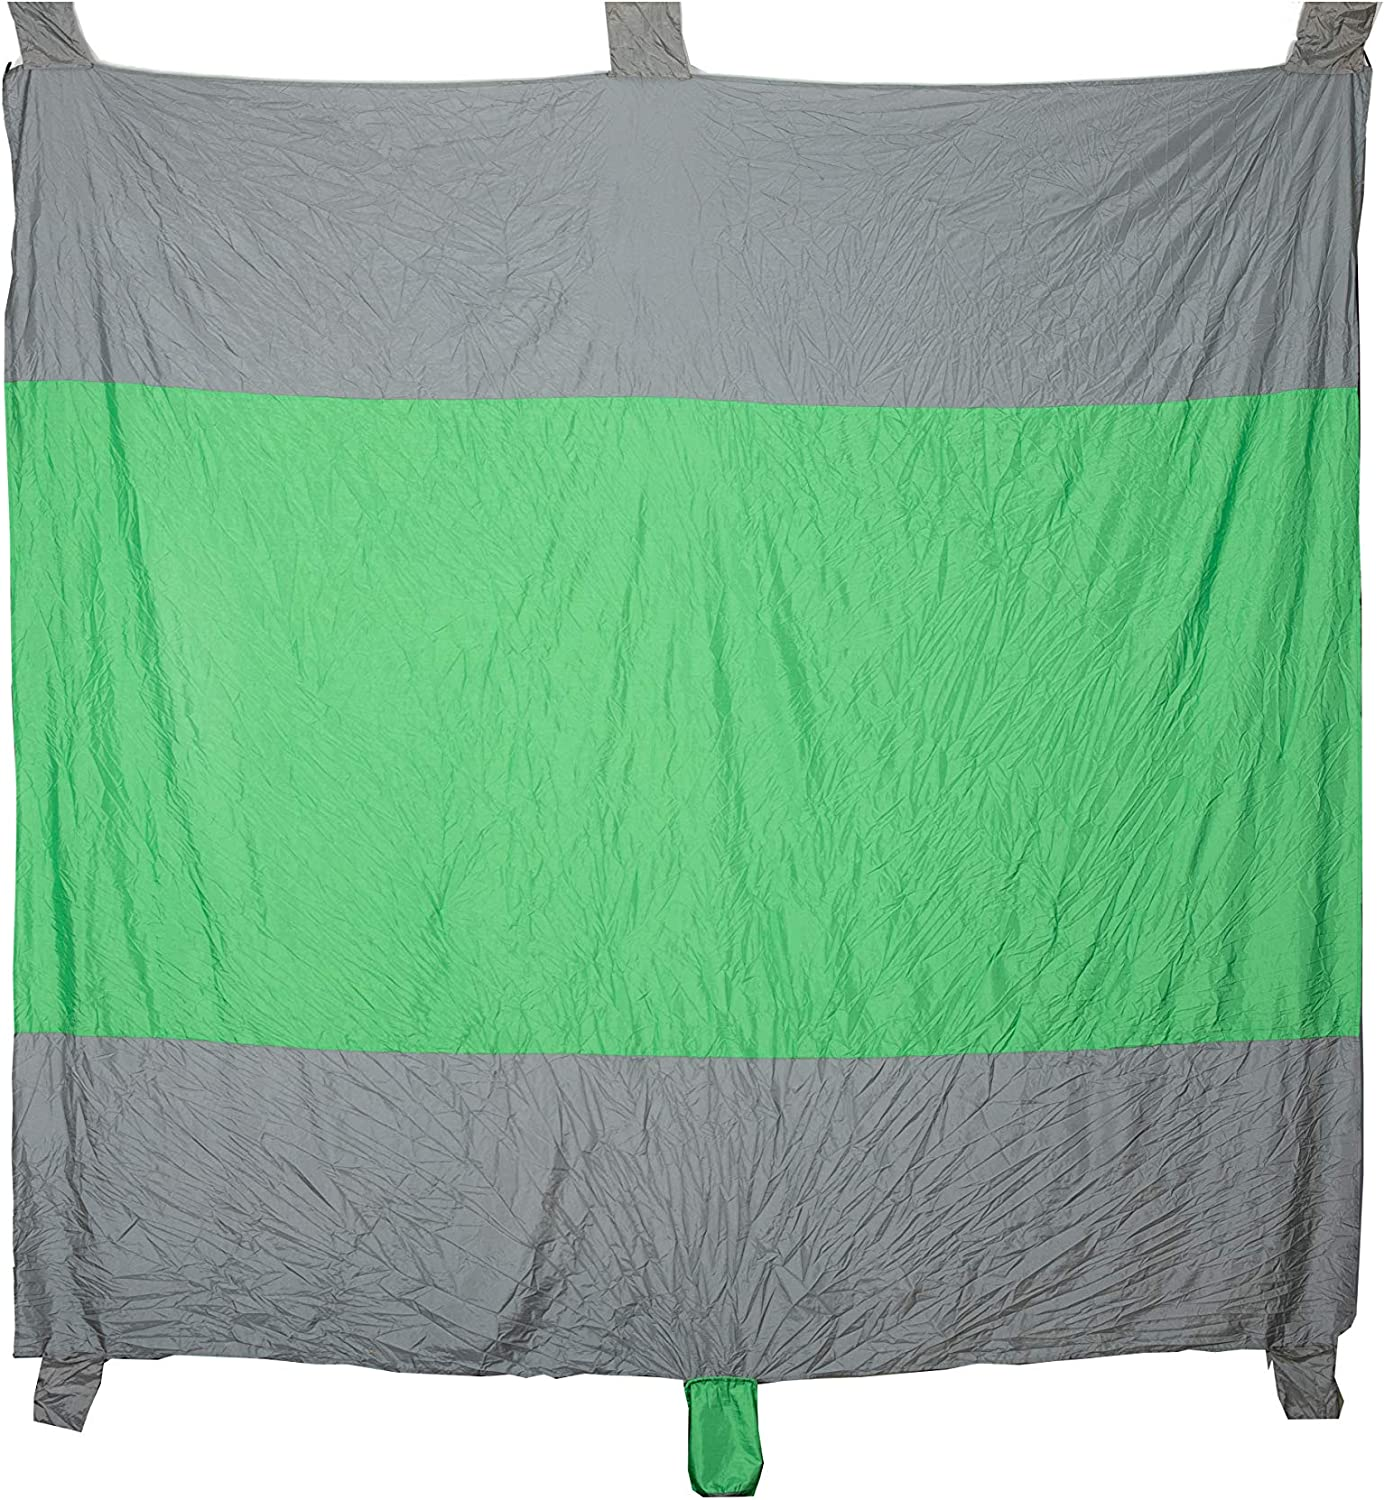 Extra Large Beach Blanket Lightweight Nylon Water Resistant Complete with Microfiber Cooling Towel